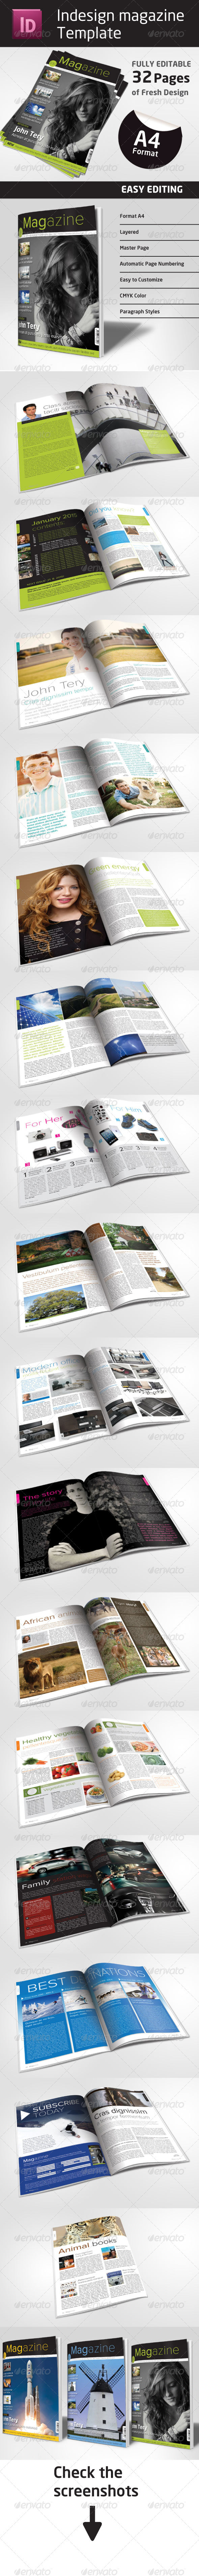 32 Pages Indesign Magazine Template in A4 Format - Magazines Print Templates